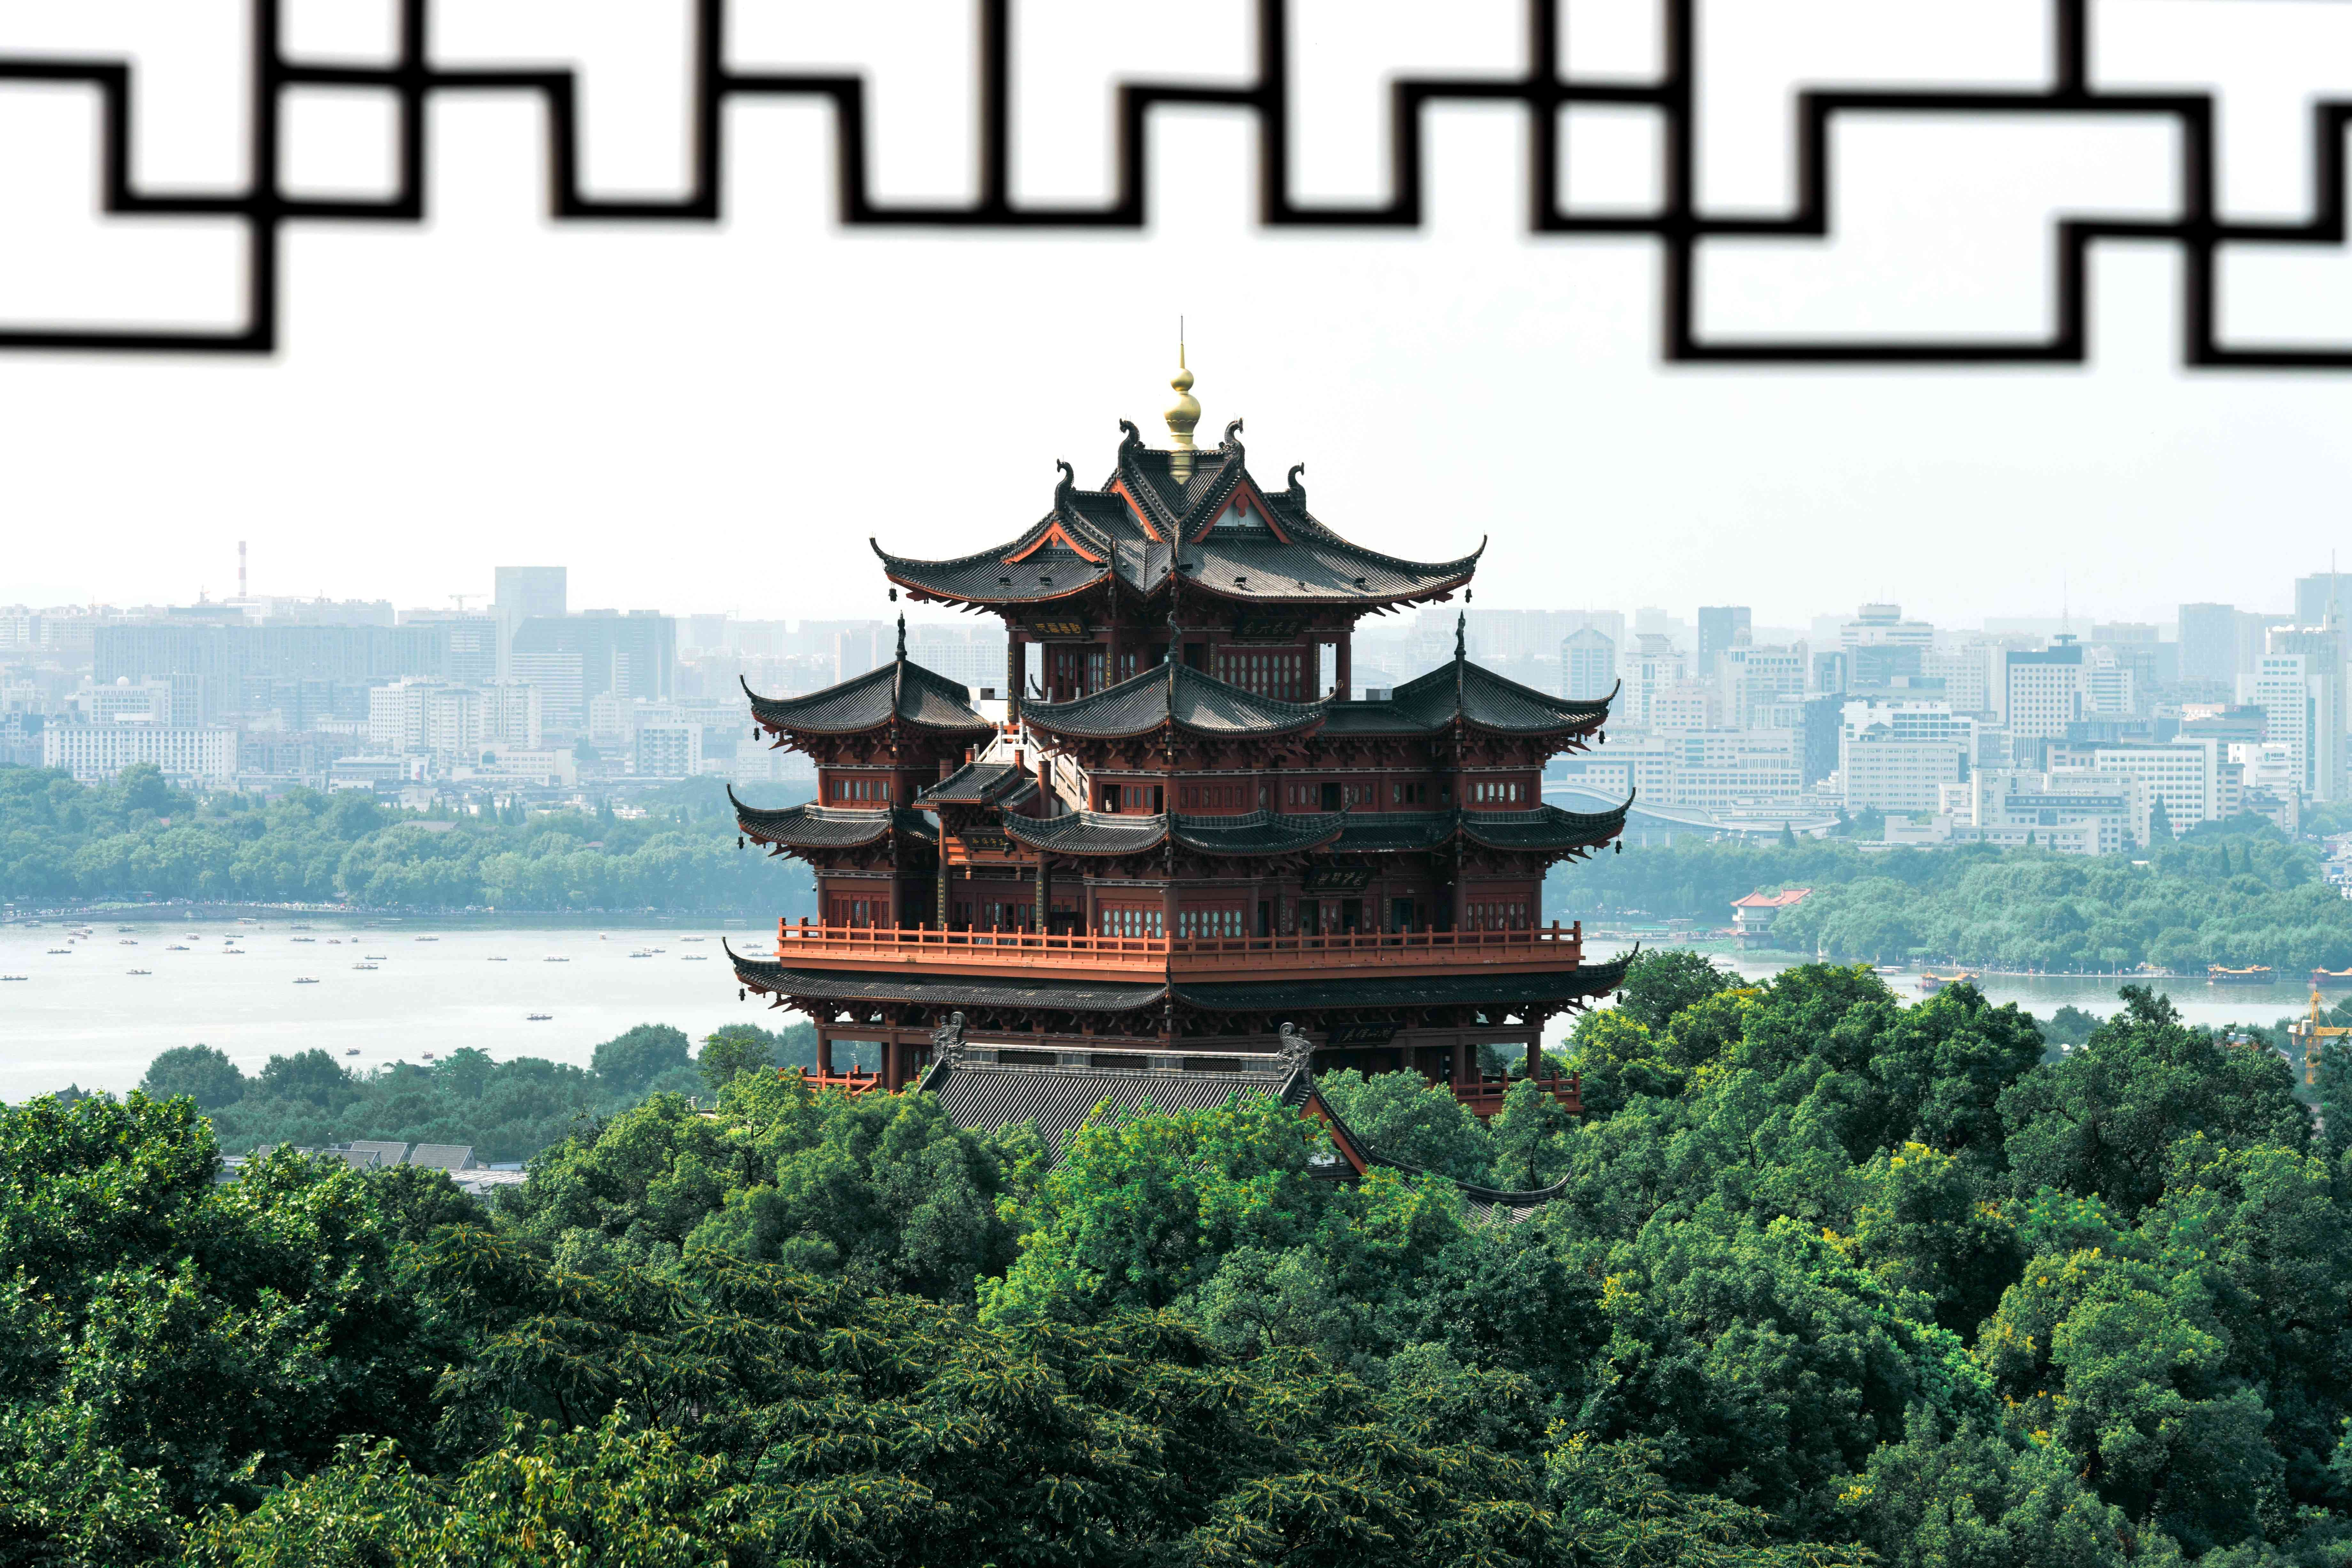 A traditional pagoda set against the background of Hangzhou, the capital of Zhejiang